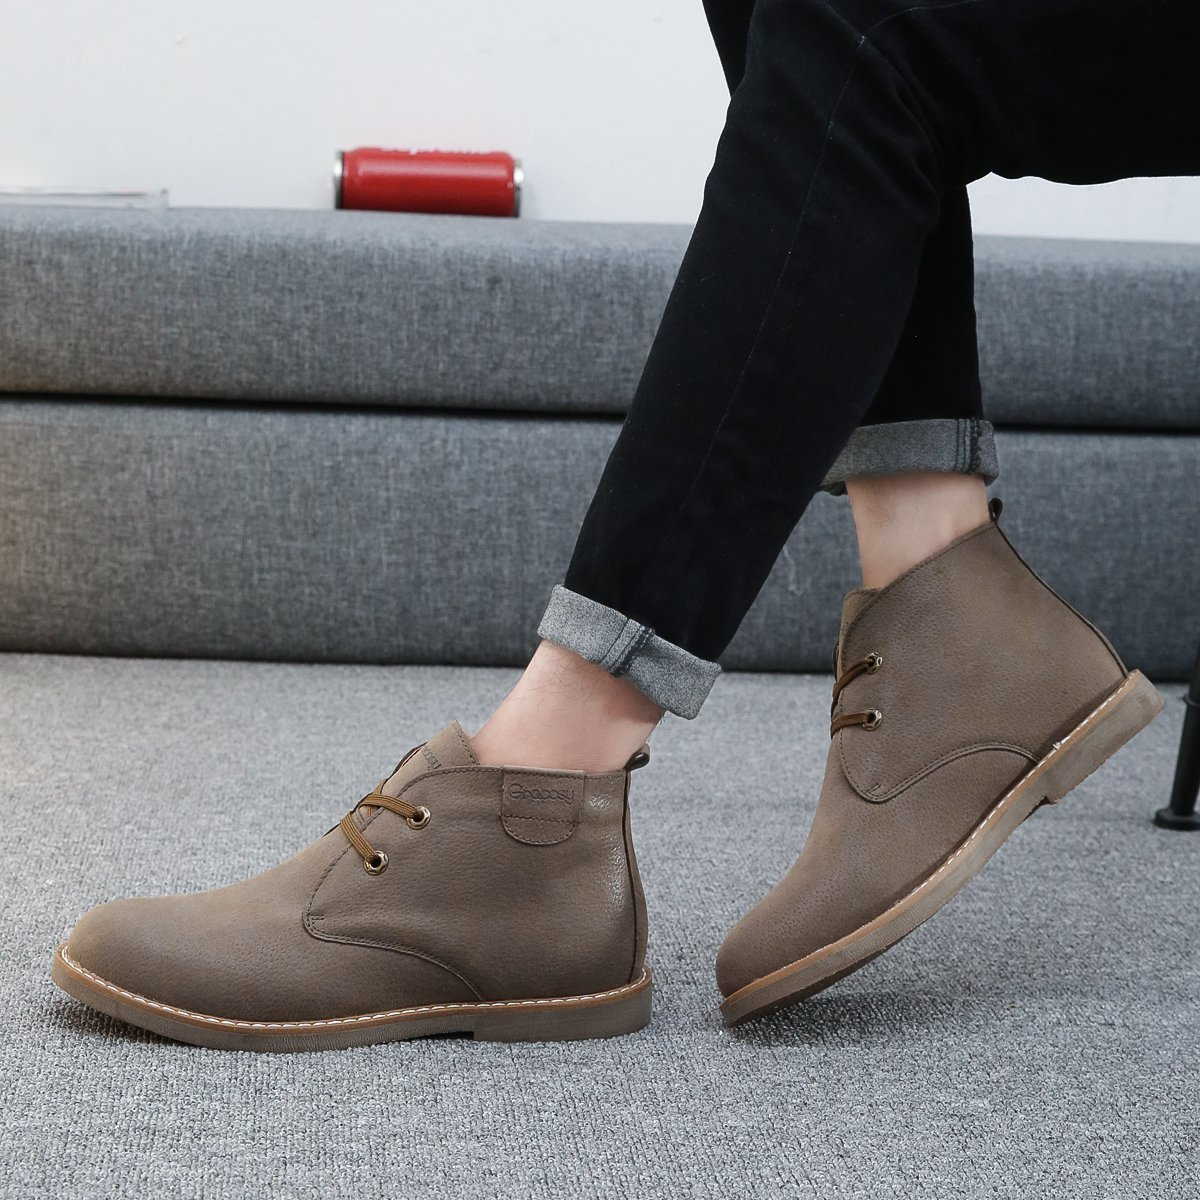 Winter Chukka Boot Lace Up Ankle Boots Fashion Casual Shoes gracosy Desert Boot for Men